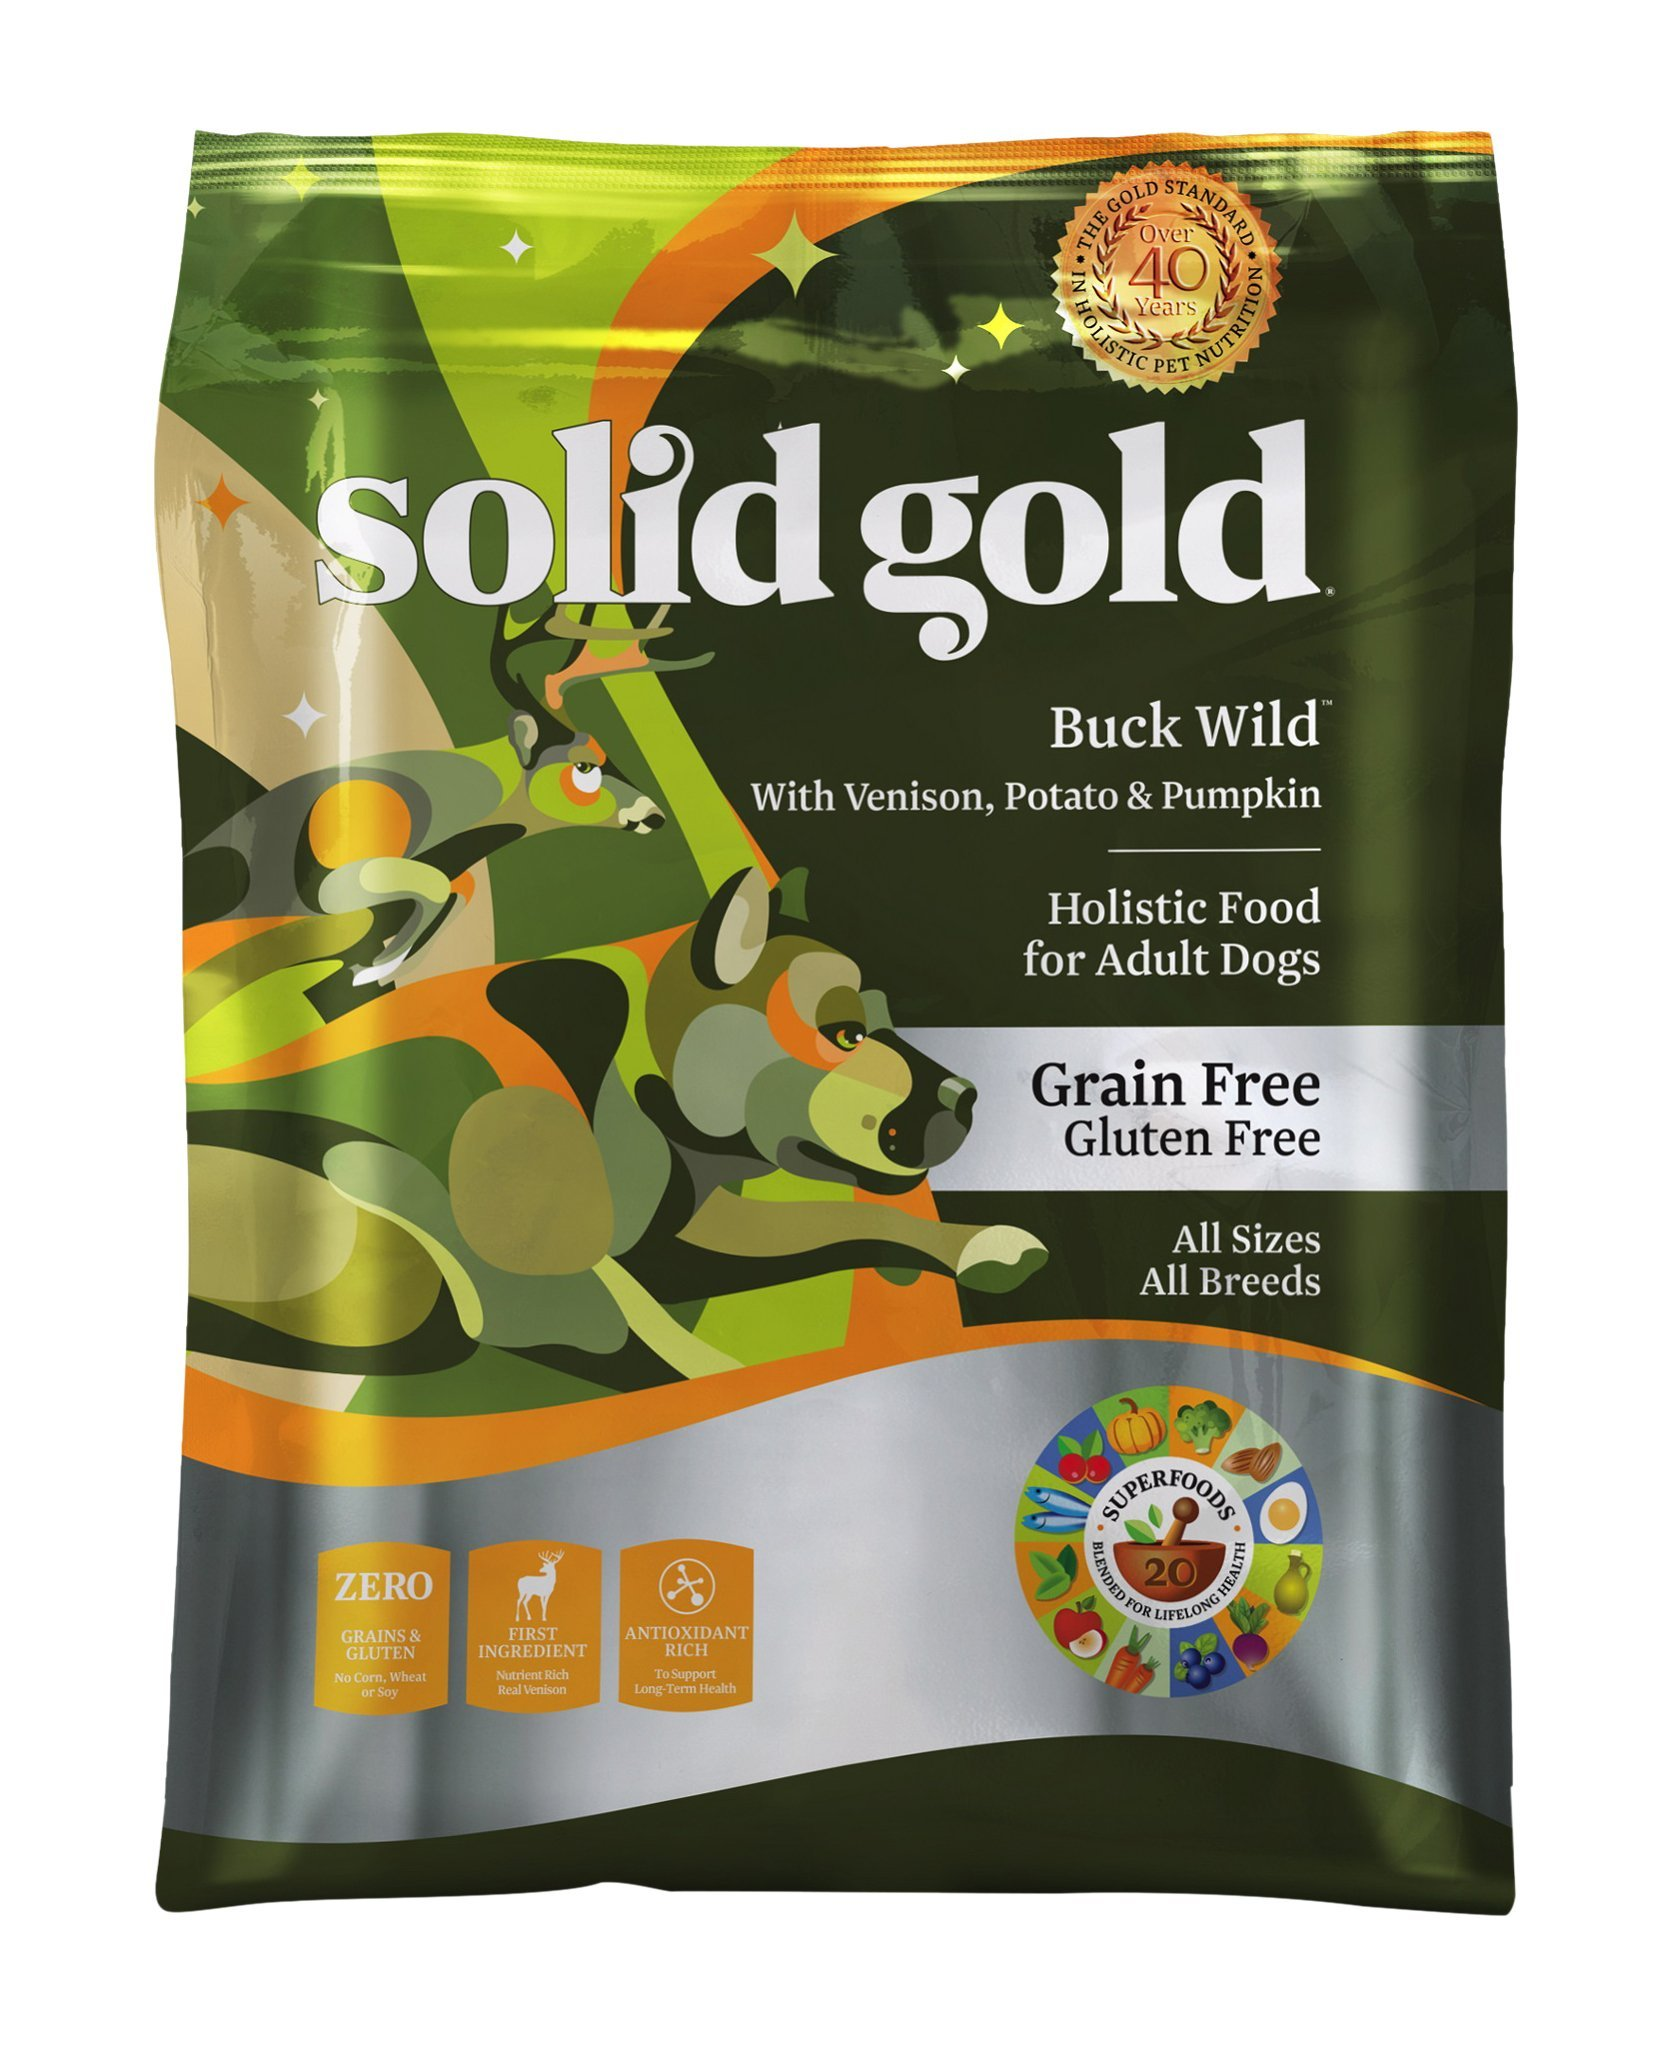 Solid Gold Grain-Free Dry Dog Food with real Poultry, Fowl or Game